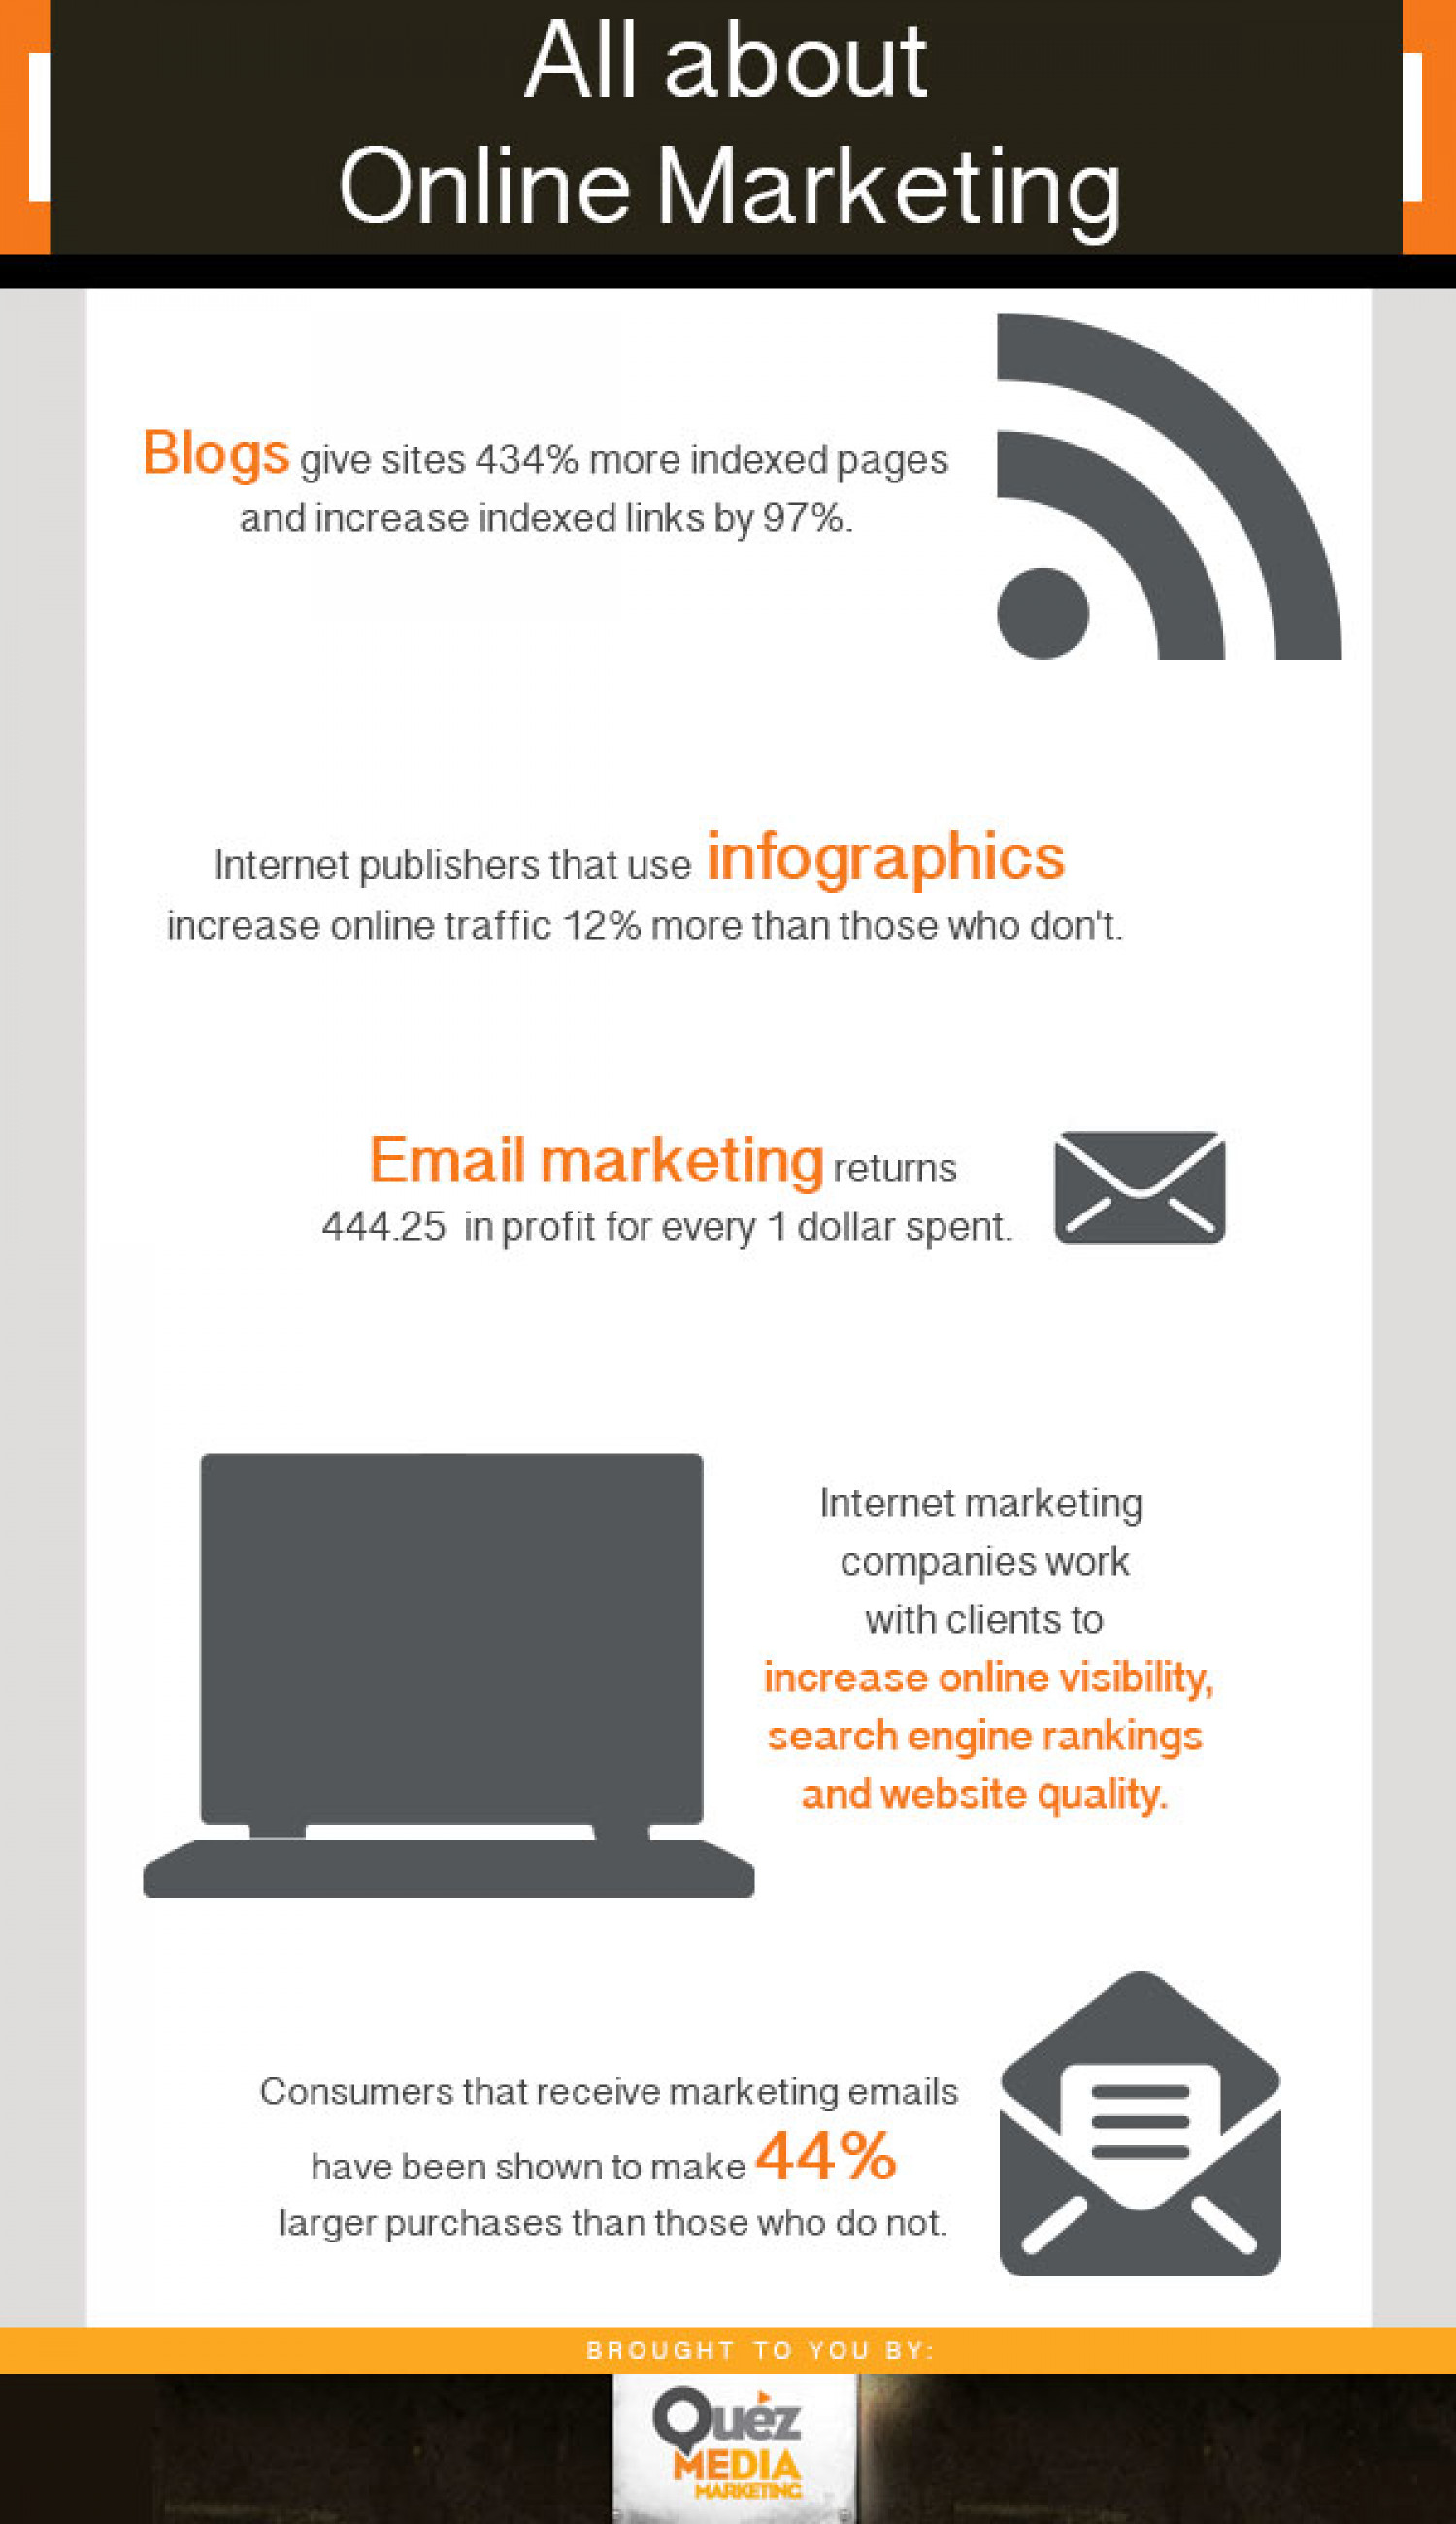 All About Online Marketing Infographic